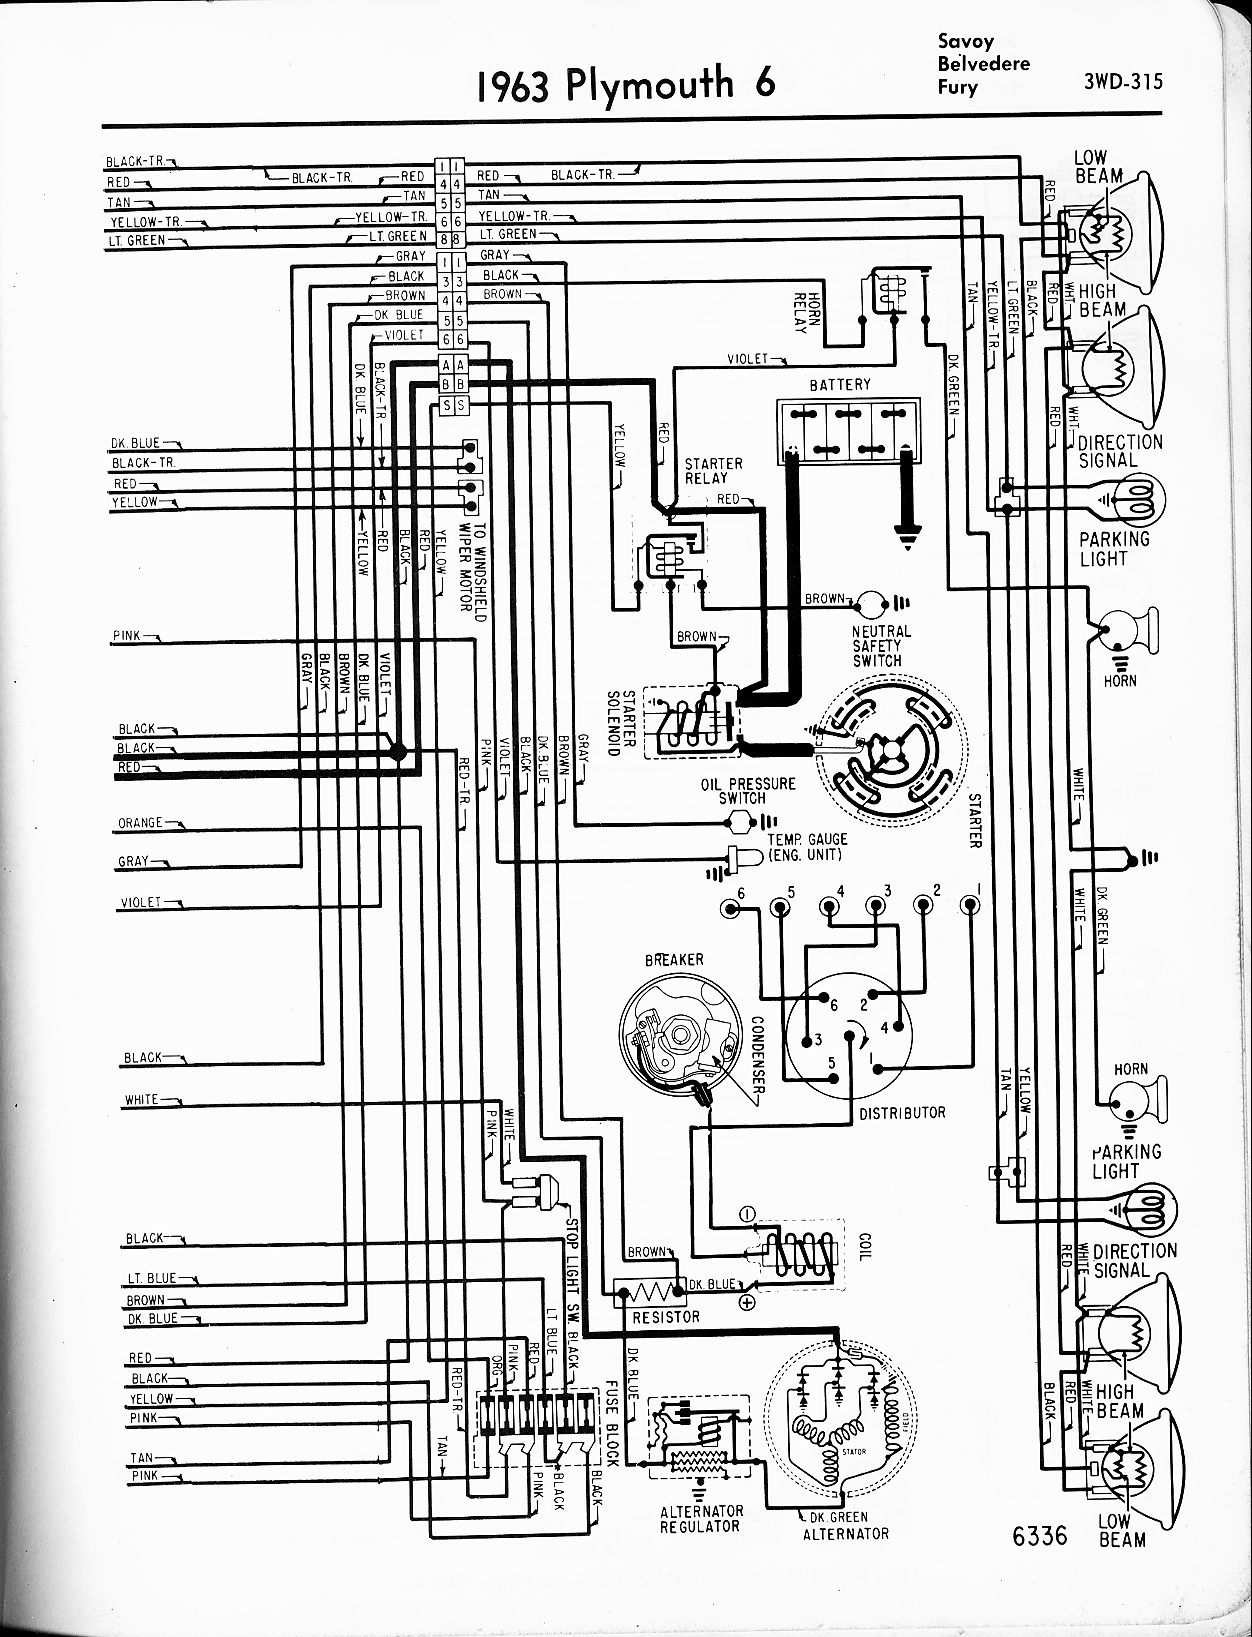 hight resolution of 1956 1965 plymouth wiring the old car manual project wiring diagrams of 1961 plymouth 6 savoy belvedere and fury